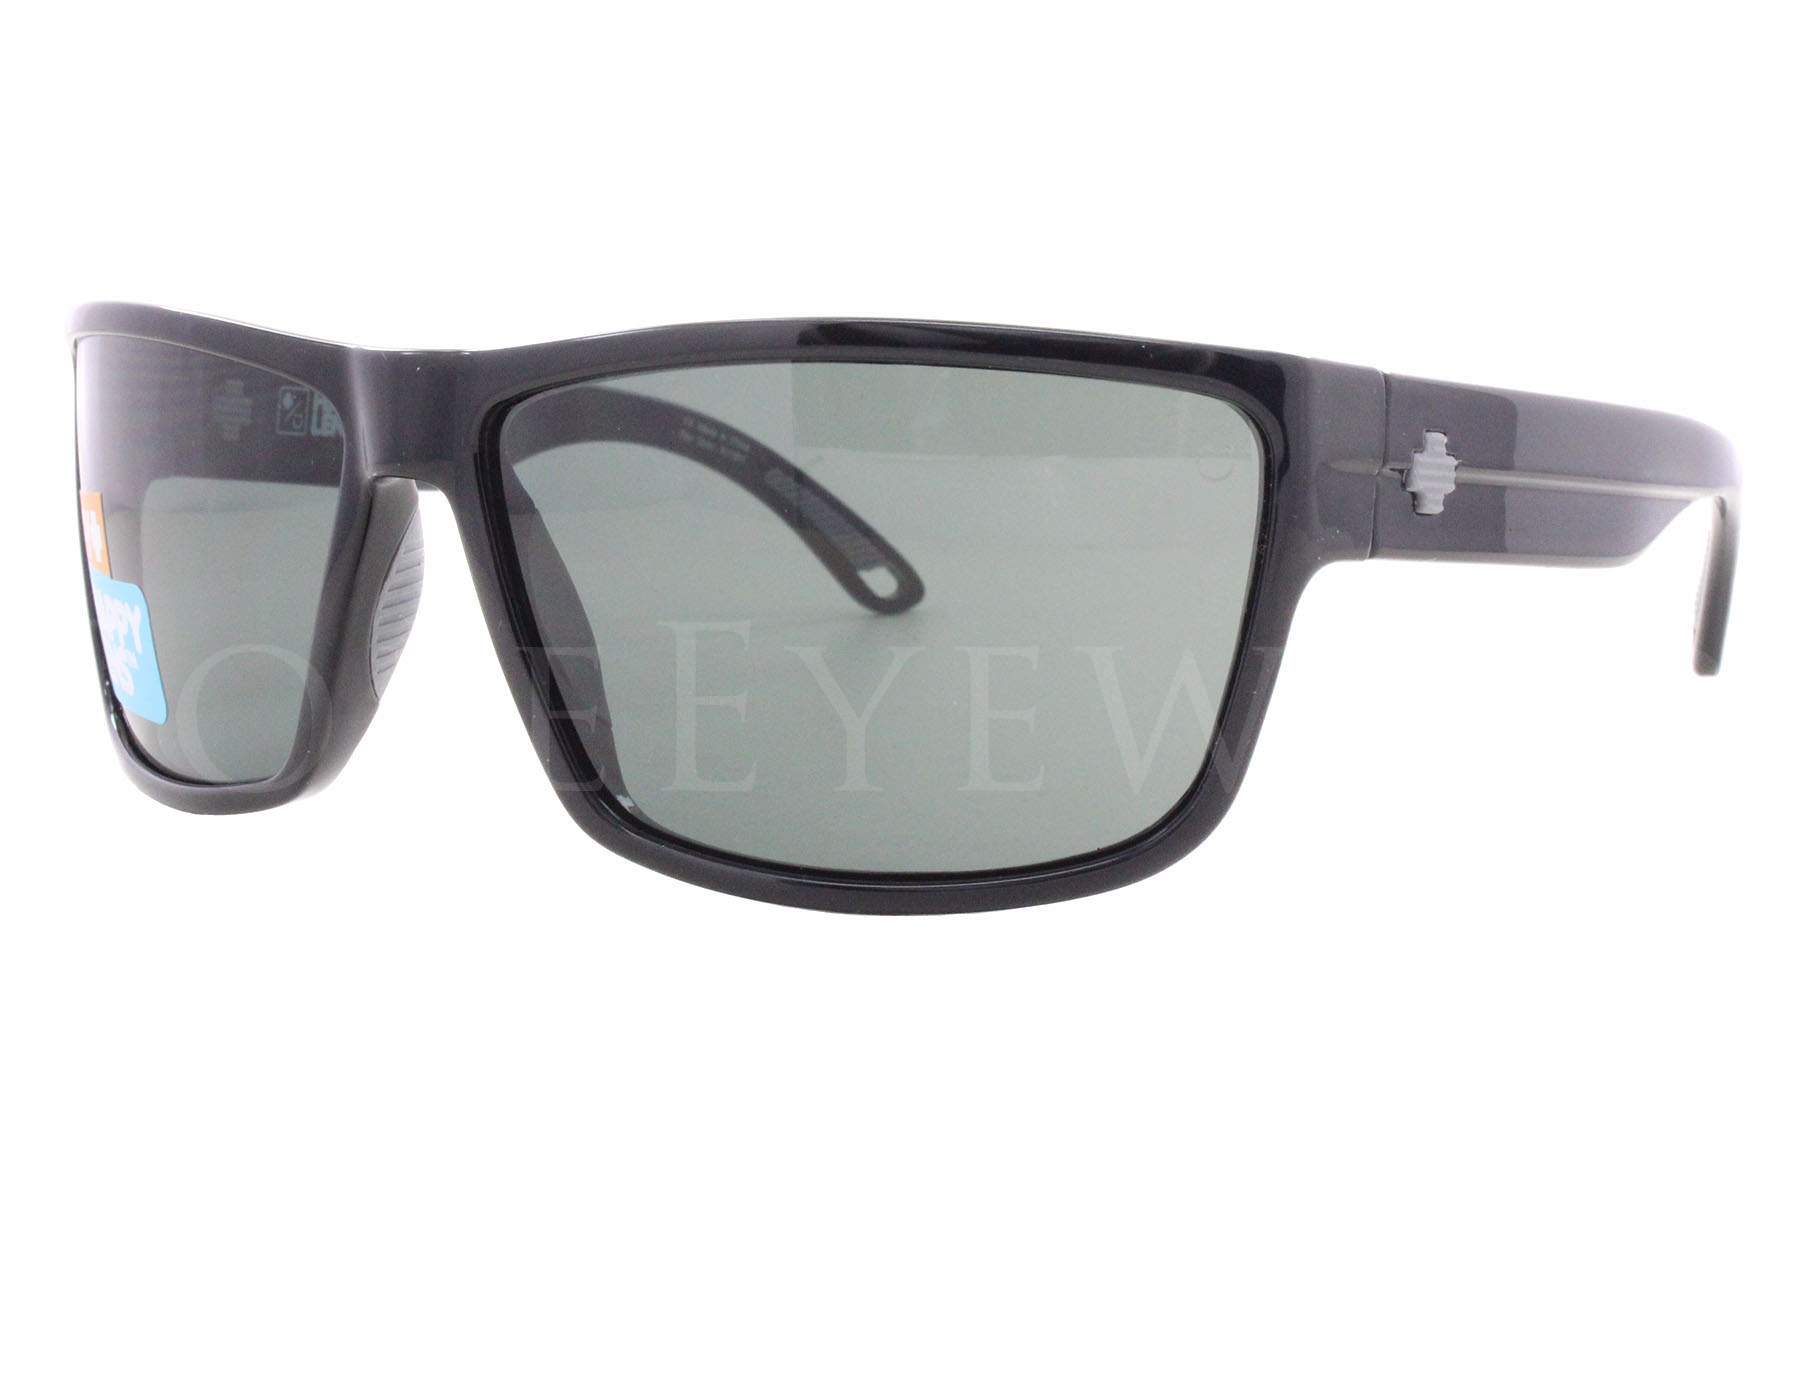 b3f9c5e121 Details about NEW Spy Optics Rocky 673248038863 Black   Happy Grey Green  Sunglasses